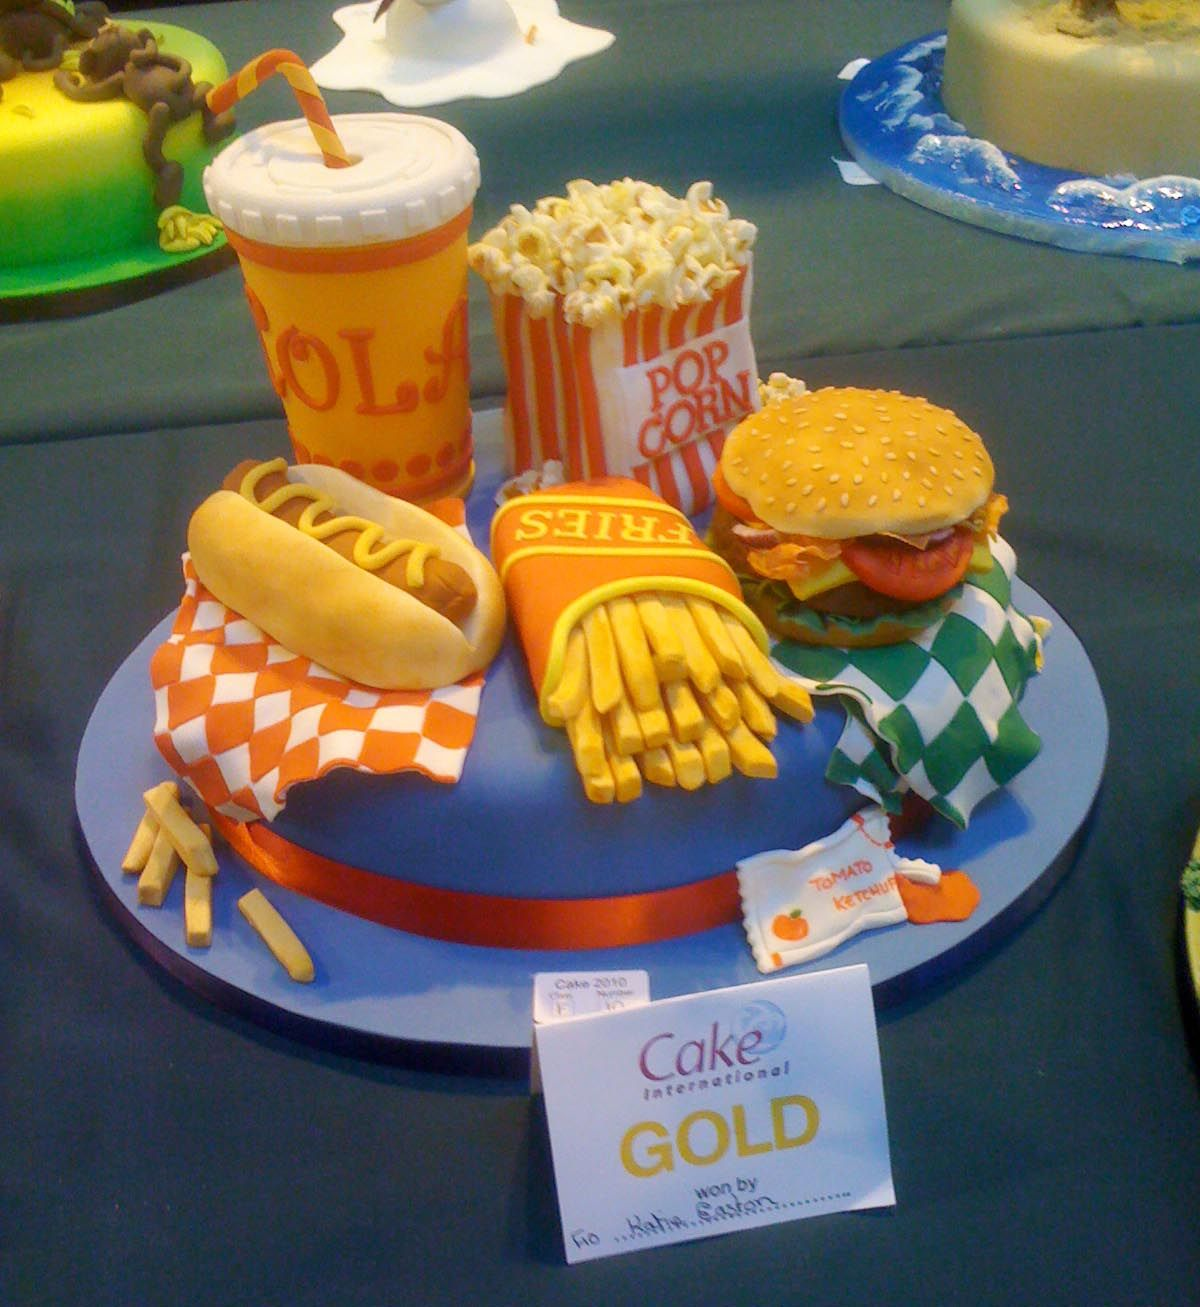 Cake Decorating Shows On Food Network : Cakes Food Junk Food Cake [ Junk Food Cake ] OMG ...